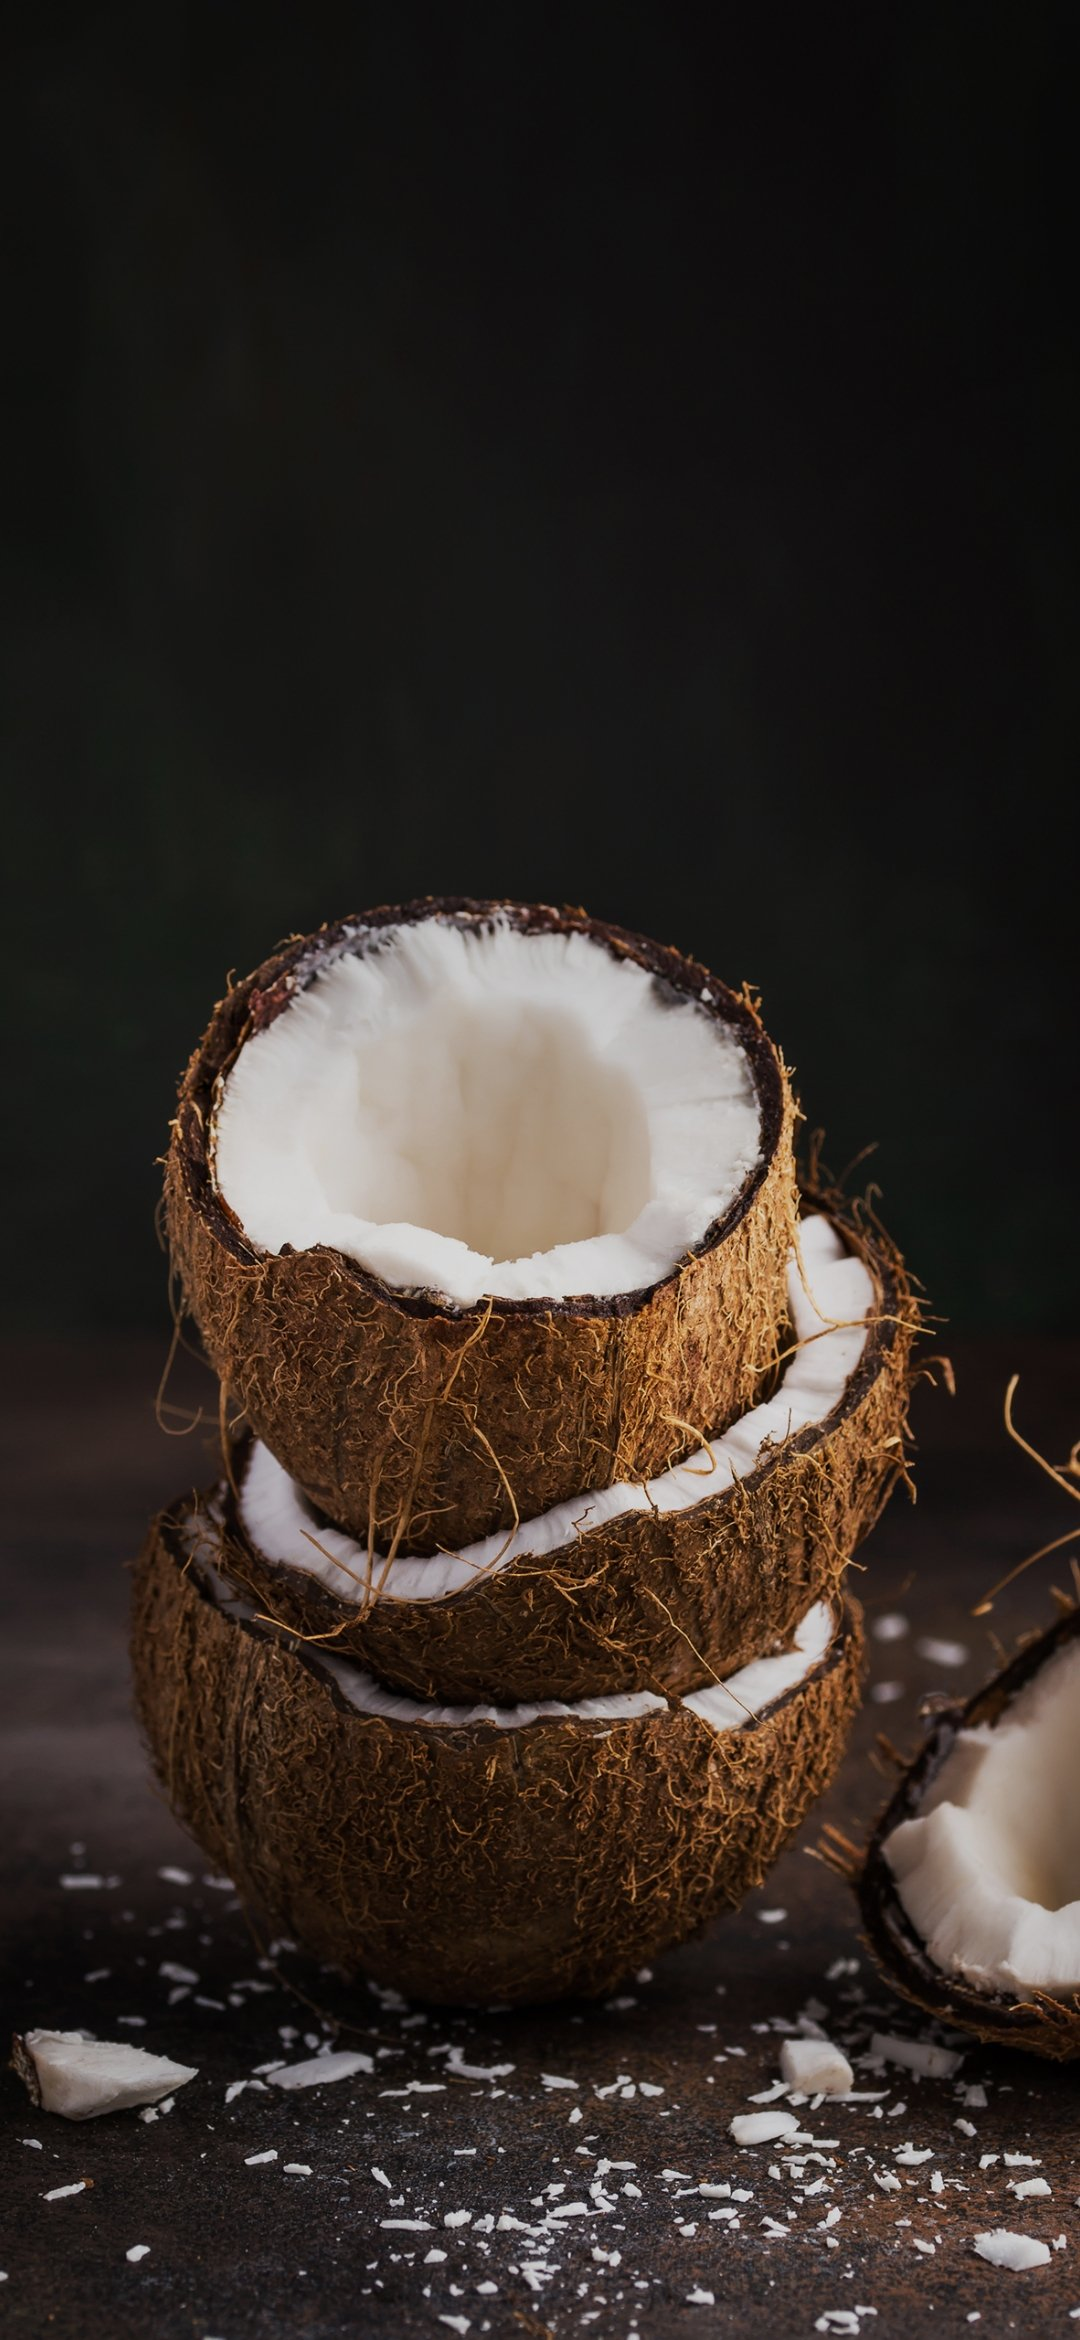 Coconut and coconut rind